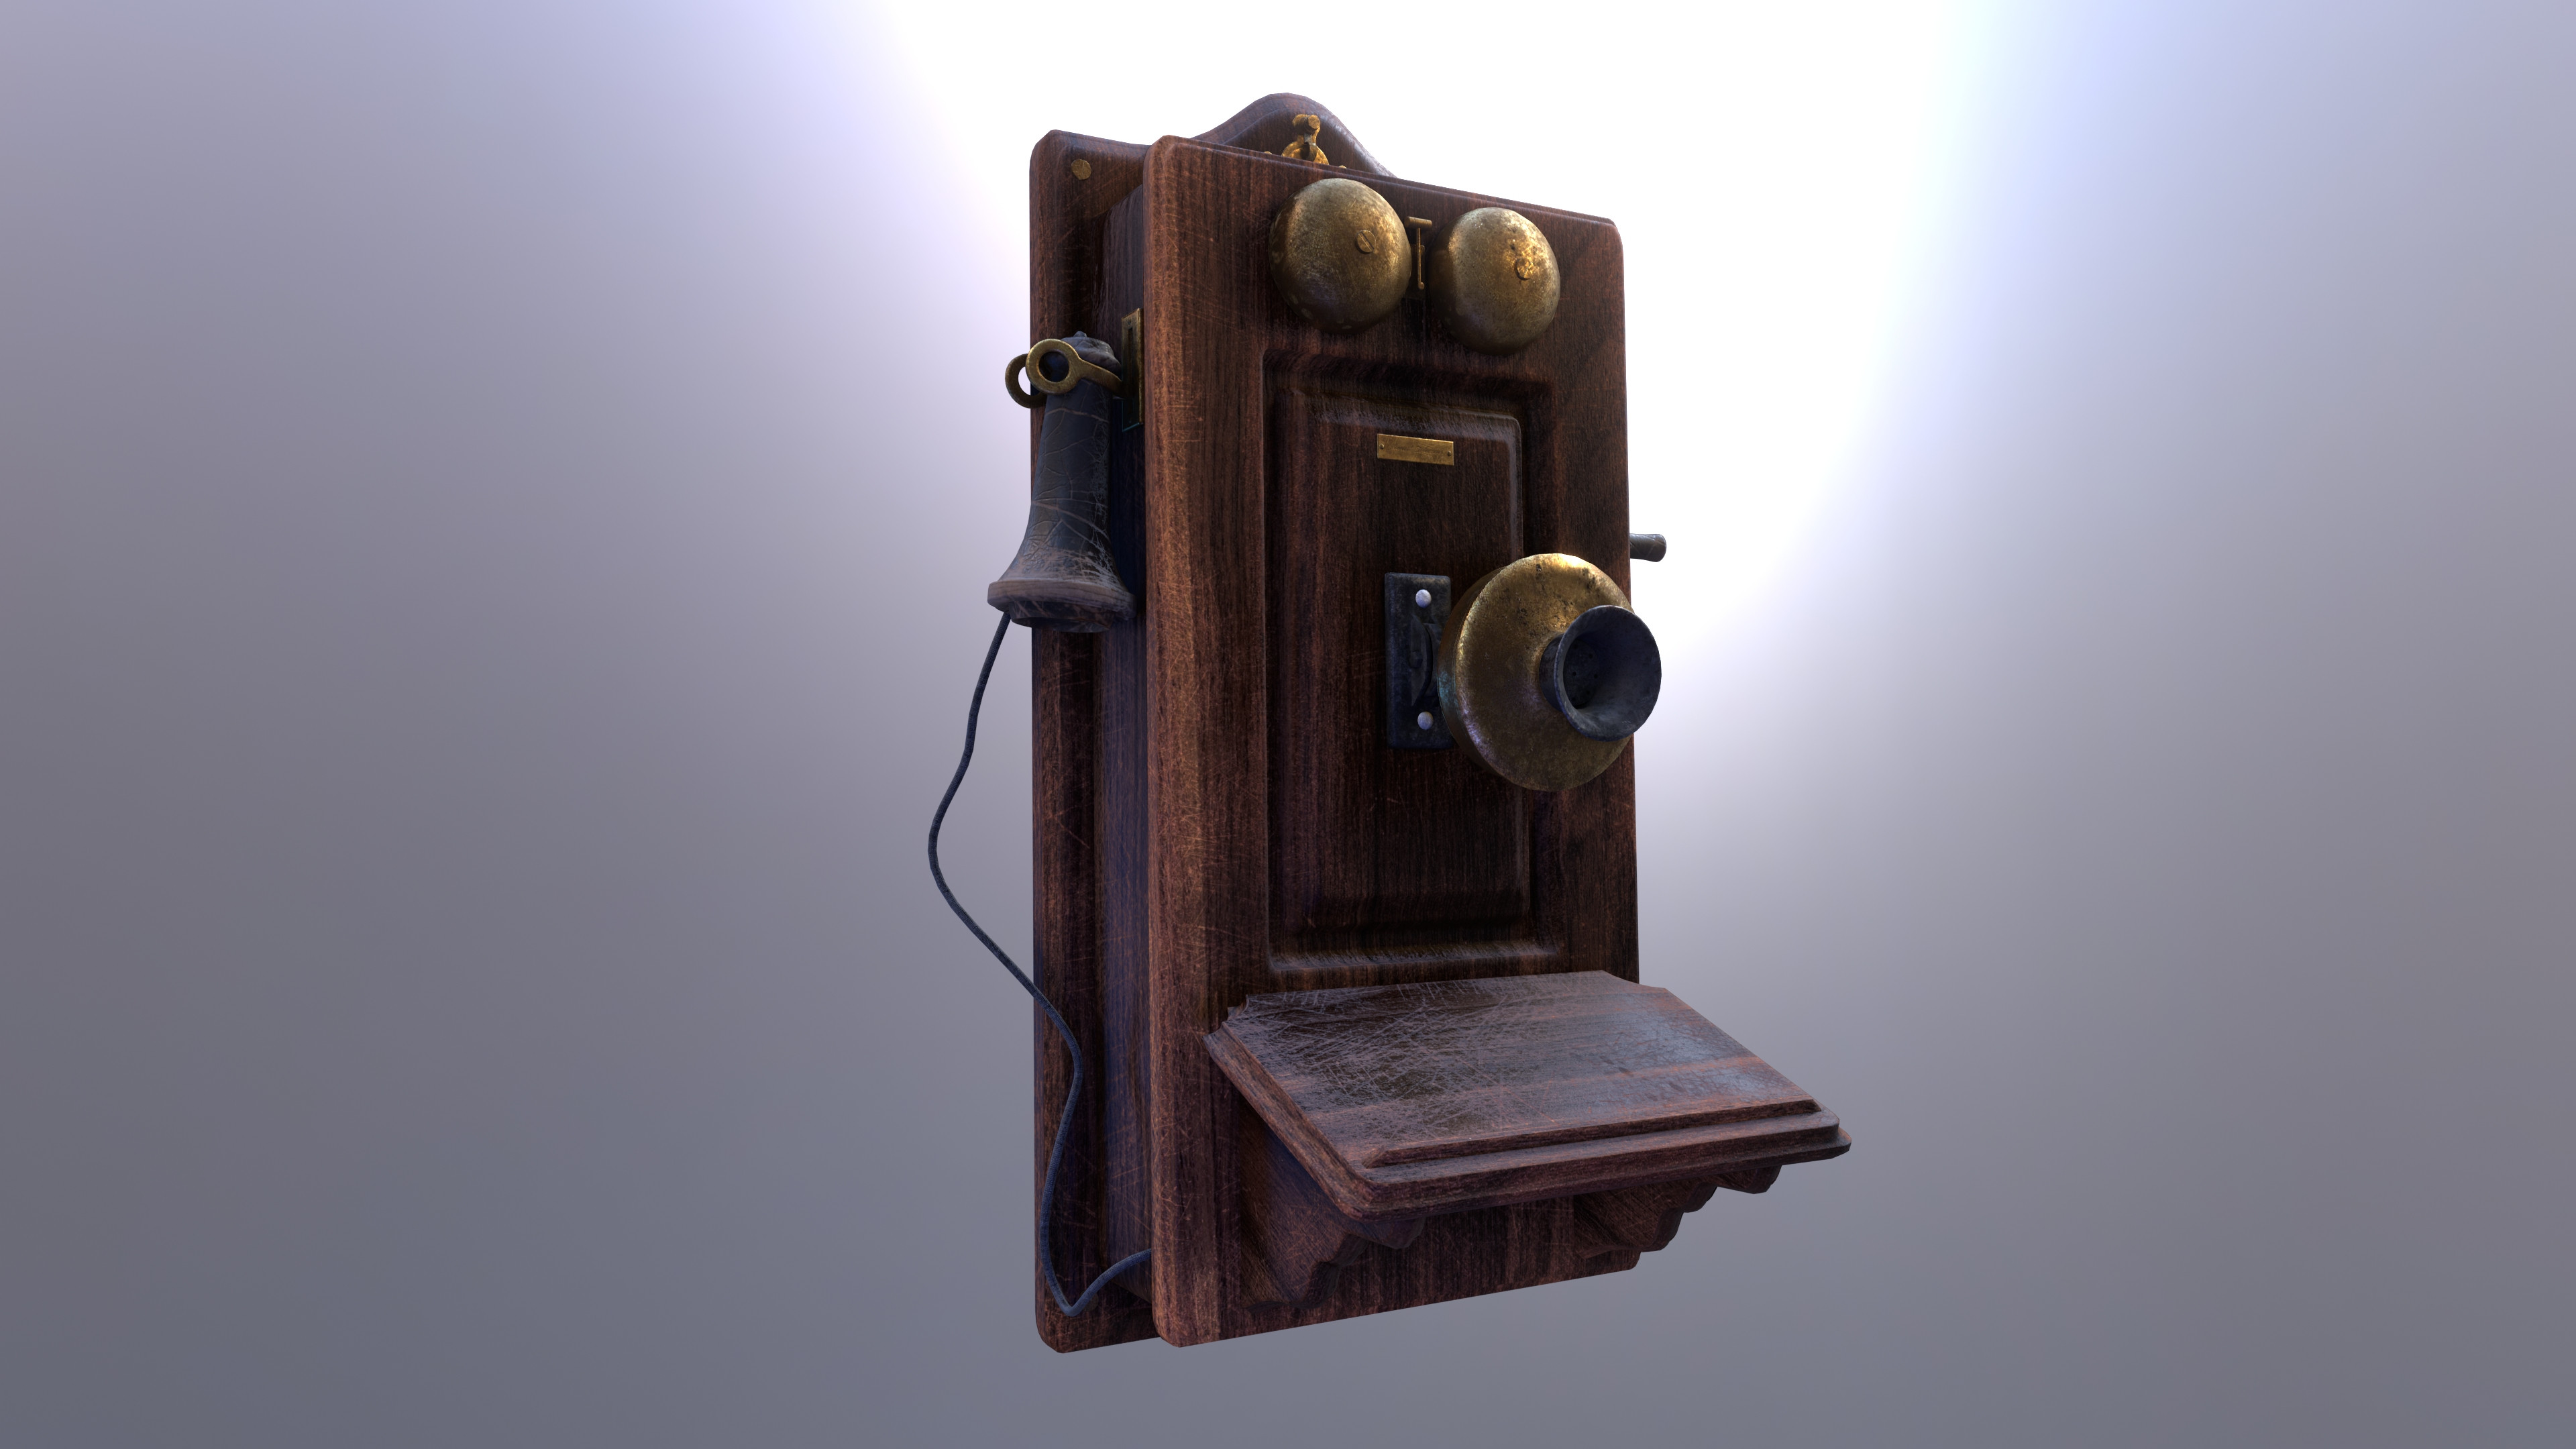 Stewarts Antique Telephone preview image 1